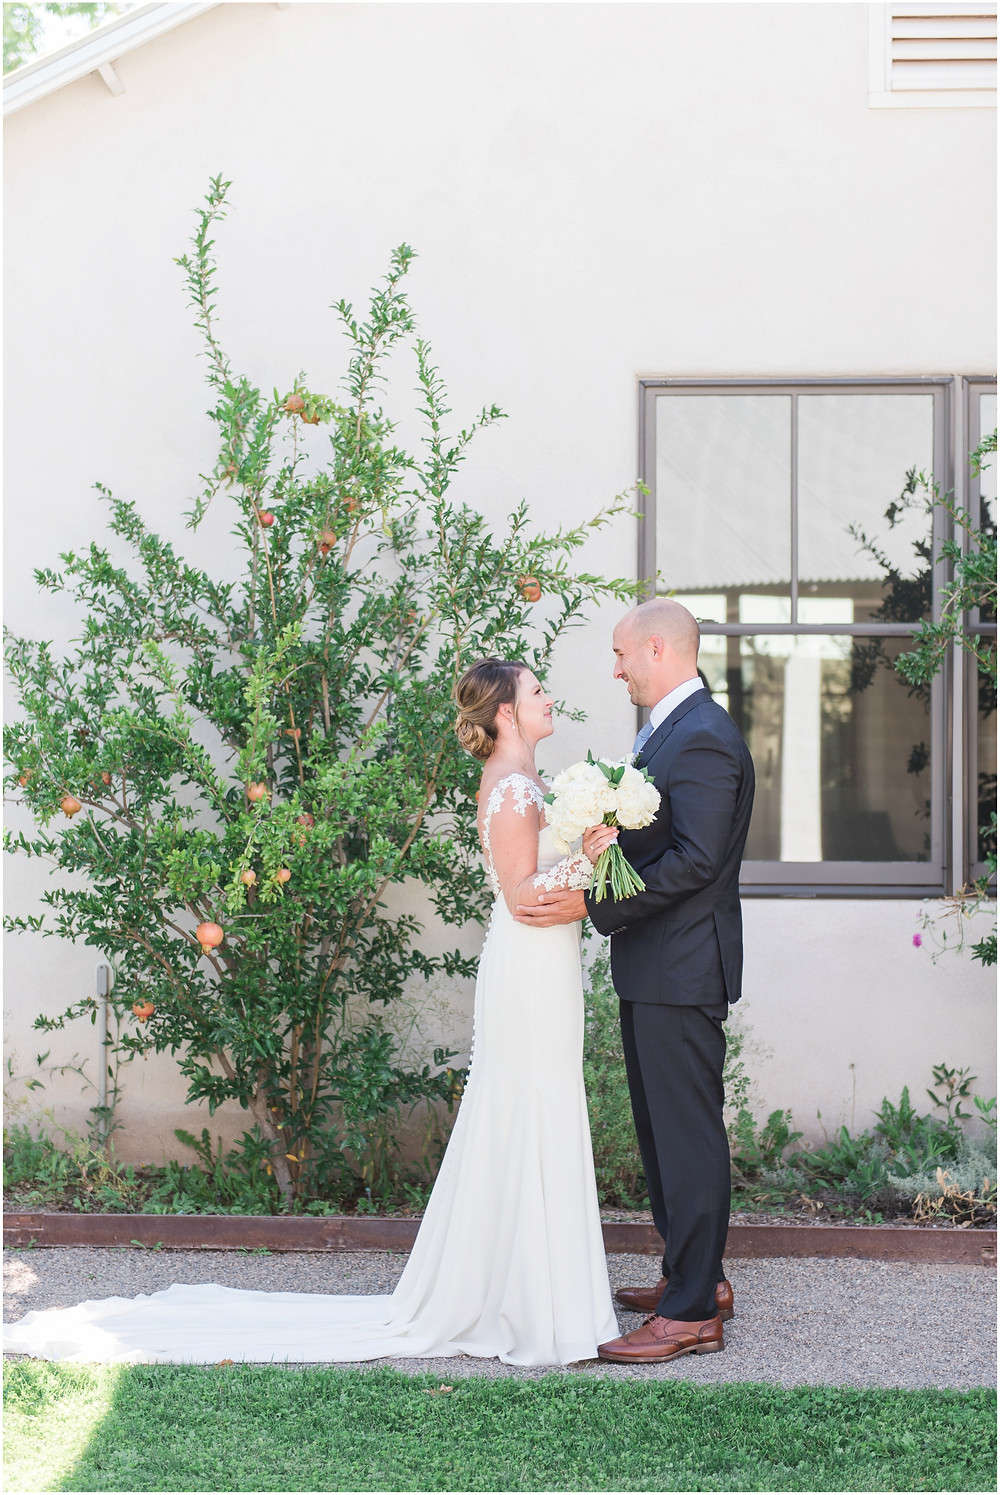 Wedding at Casa Rondena Winery. Maura Jane Photography. fall wedding New mexico. Outdoor wedding venue albuquerque. New Mexico Wedding Photographer. Winery Wedding. first look photos